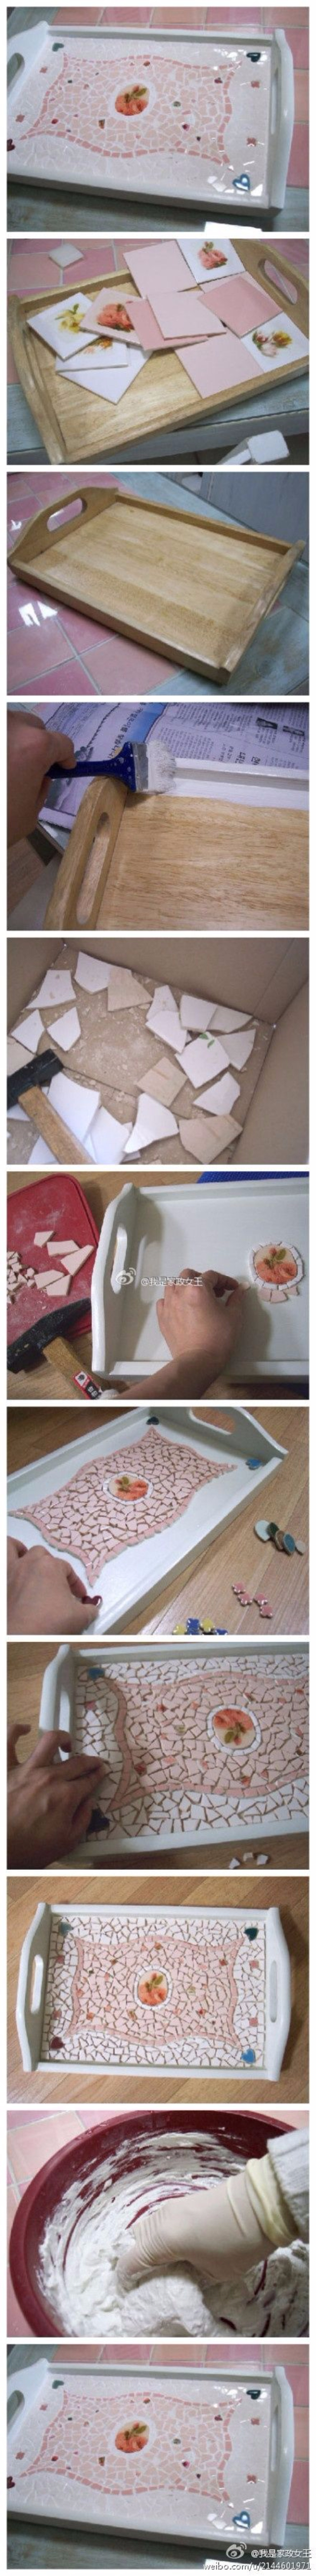 DIY Projects Made With Broken Tile - Mosaic Tray - Best Creative Crafts, Easy DYI Projects You Can Make With Tiles - Mosaic Patterns and Crafty DIY Home Decor Ideas That Make Awesome DIY Gifts and Christmas Presents for Friends and Family http://diyjoy.com/diy-projects-broken-tile